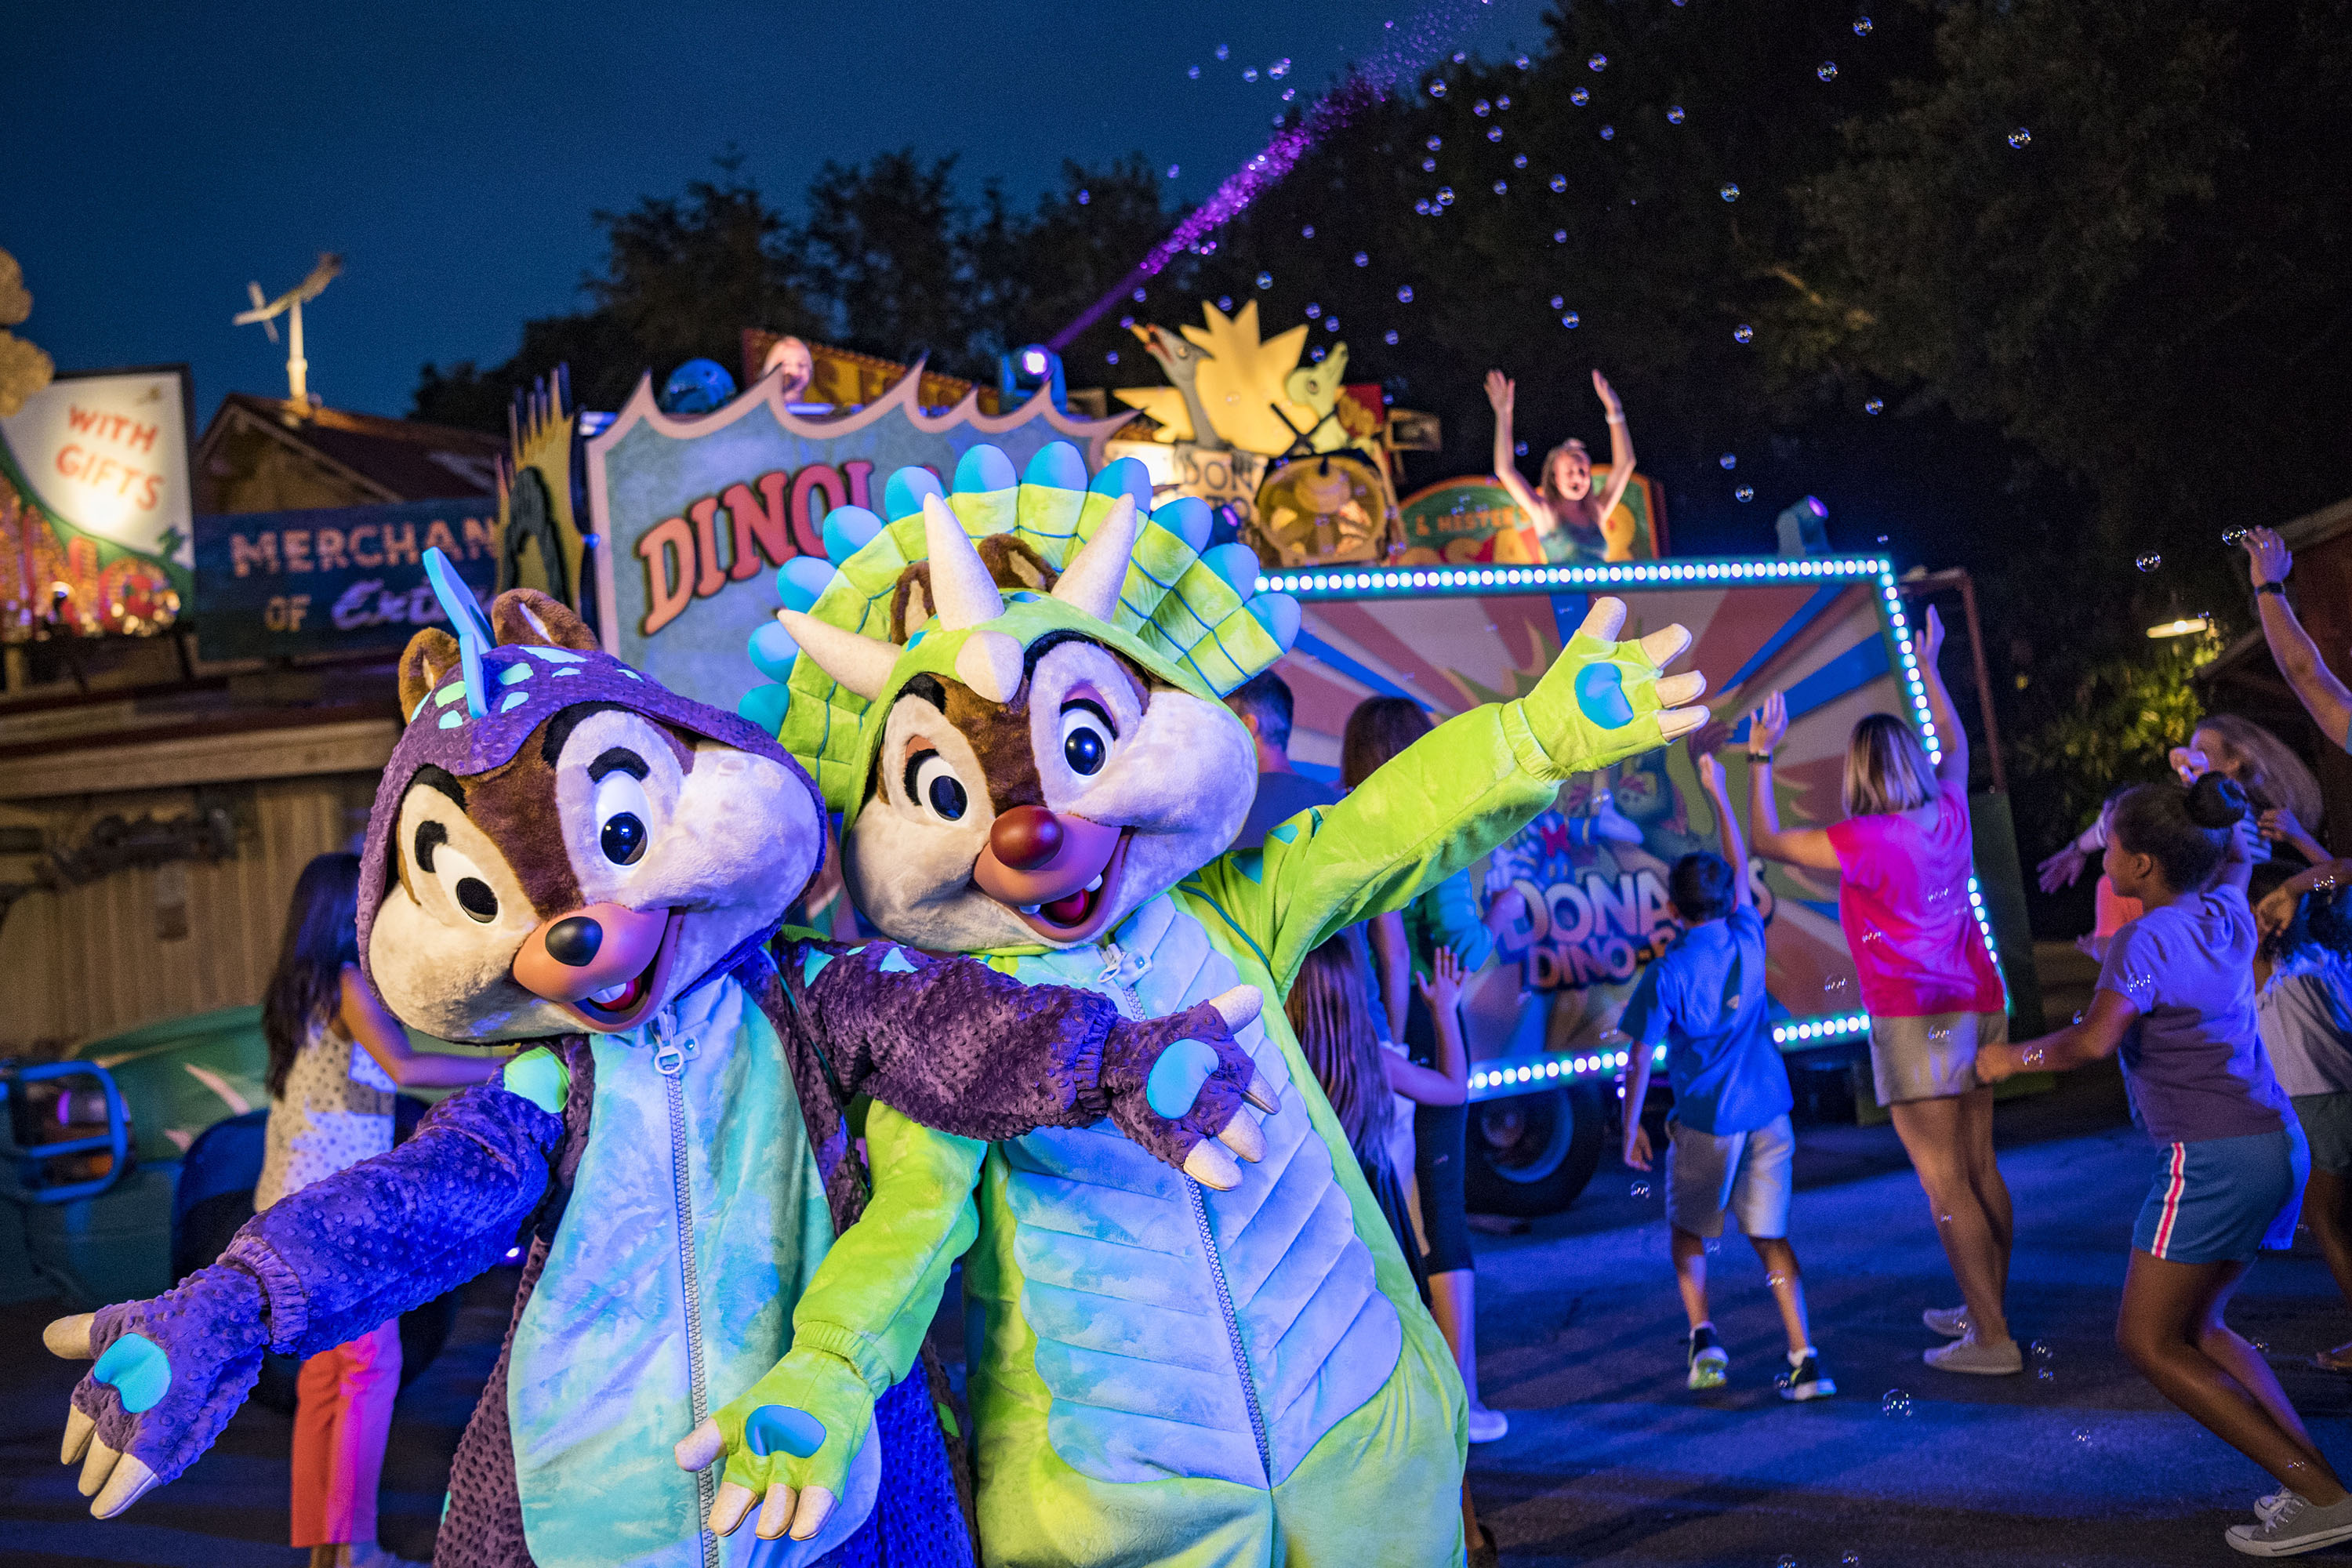 Slide 10 of 15: Every night, Chip and Dale dance the night away with guests during DonaldÕs Dino-Bash!, a lively celebration with festive decor and character greetings galore in DinoLand U.S.A. at DisneyÕs Animal Kingdom. Throughout the day, guests enjoy photo ops and greetings in several locations with feathered friends like Donald, Daisy, Scrooge McDuck and Launchpad McQuack, before the nighttime dance party. ItÕs all part of an Incredible Summer at Walt Disney World Resort. (Matt Stroshane, photographer)